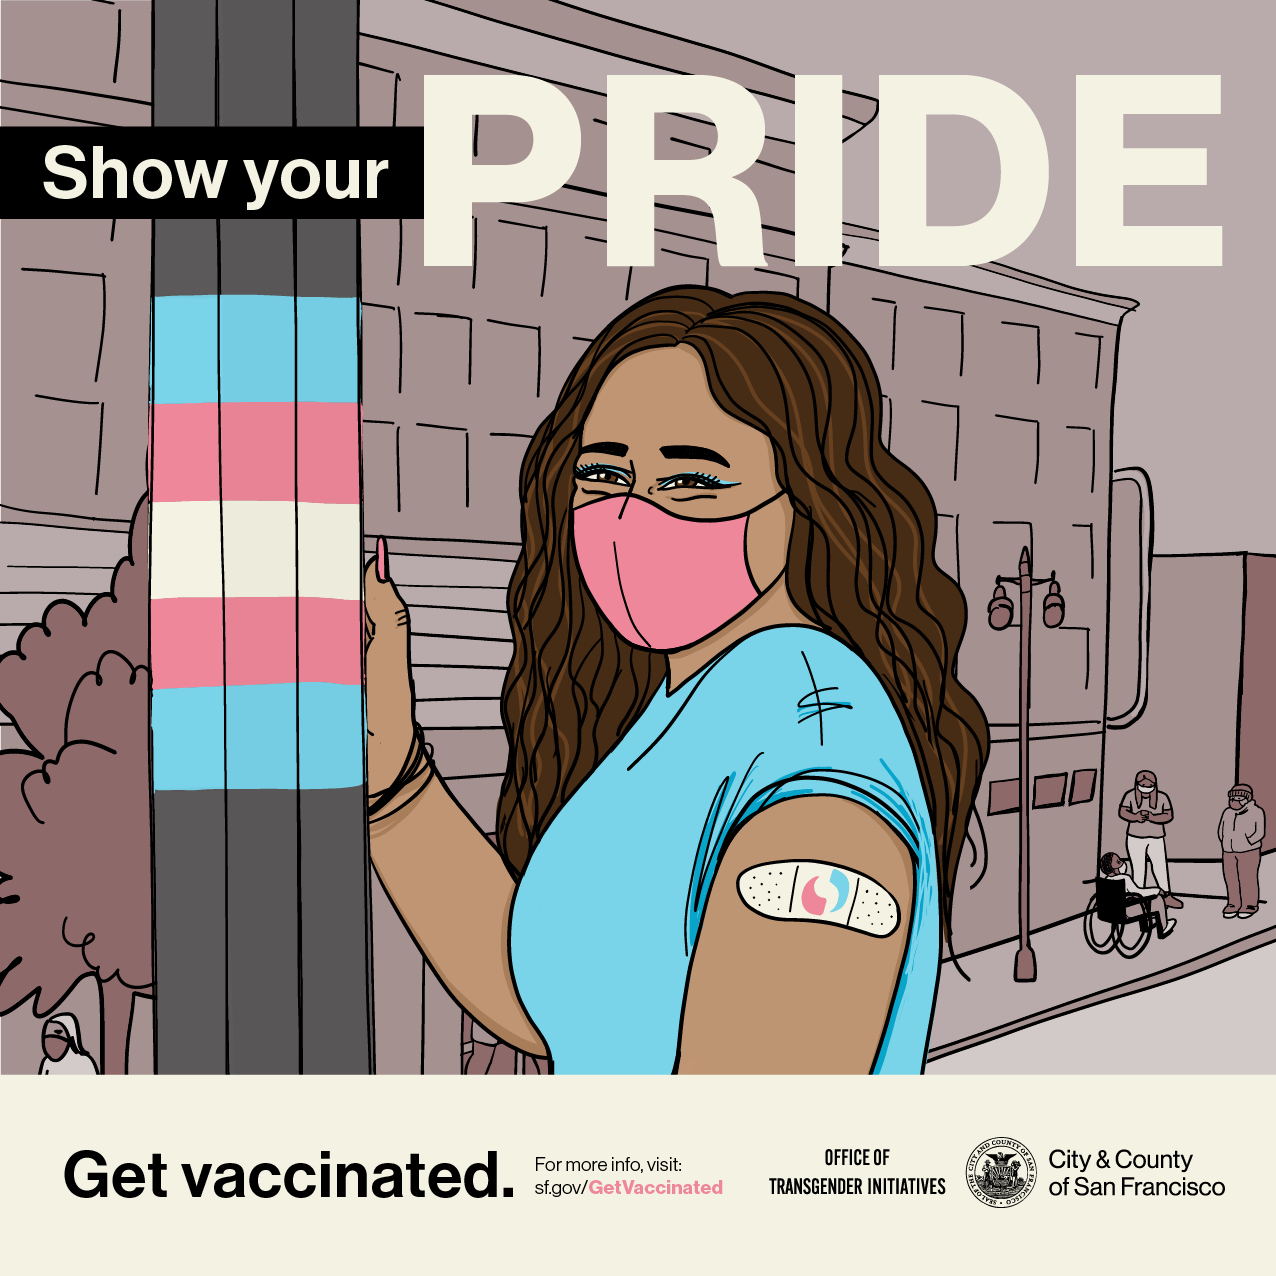 """A person with long brown hair, mask, and bandage stands in the Trans District next to a pole striped in the trans pride flag colors of blue, pink, and white. Text above reads """"Show Your Pride"""", text below reads """"Get vaccinated"""" and """"For more info visit sf.gov/getvaccinated"""" alongside the logos of the Office of Transgender Initiatives and the San Francisco City Seal."""